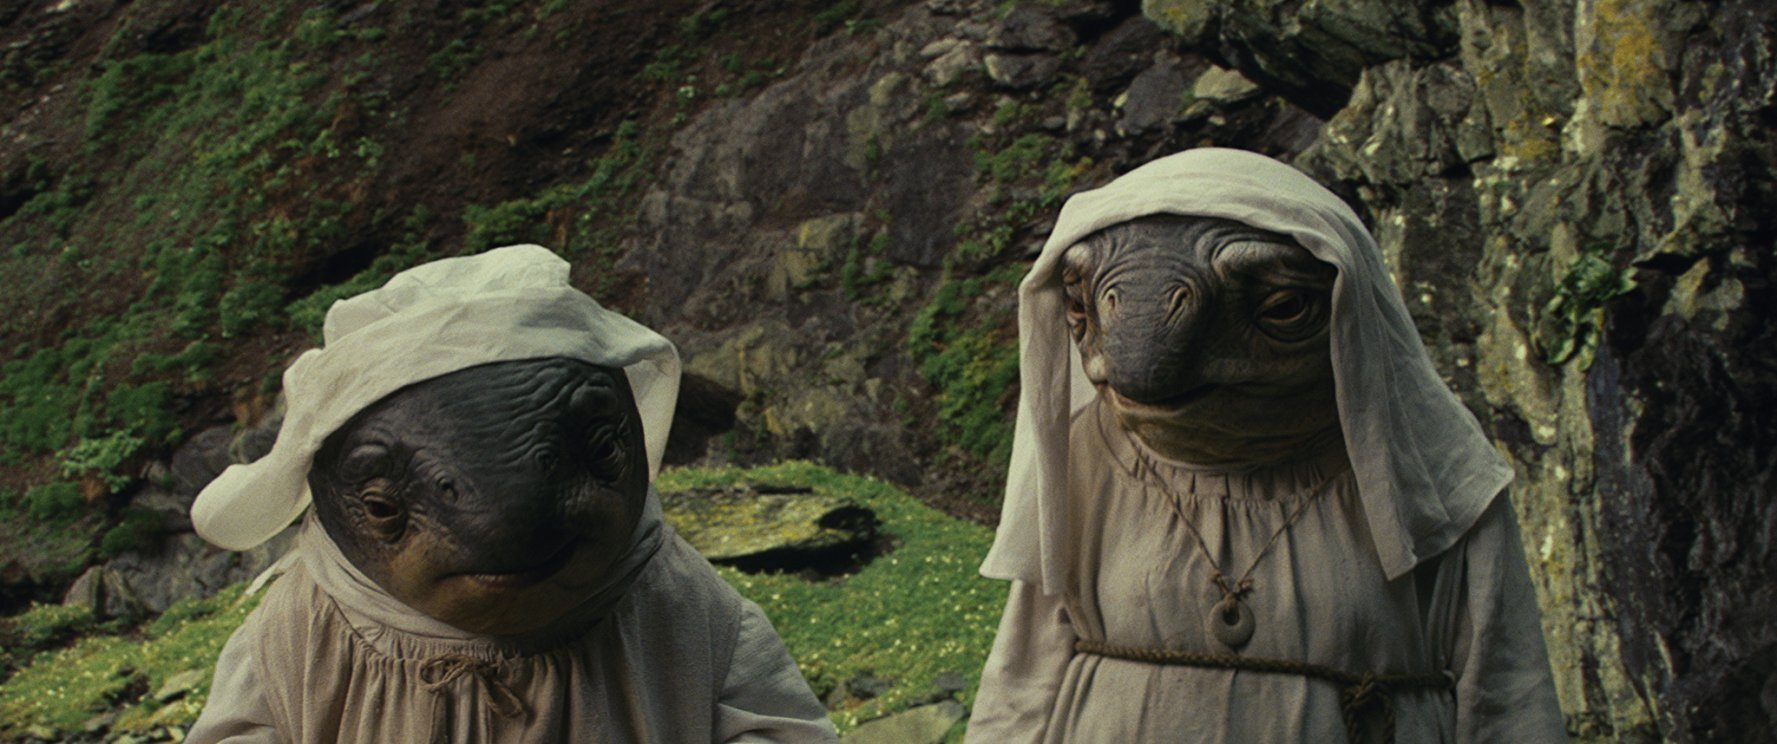 Star Wars: The Last Jedi alien nuns